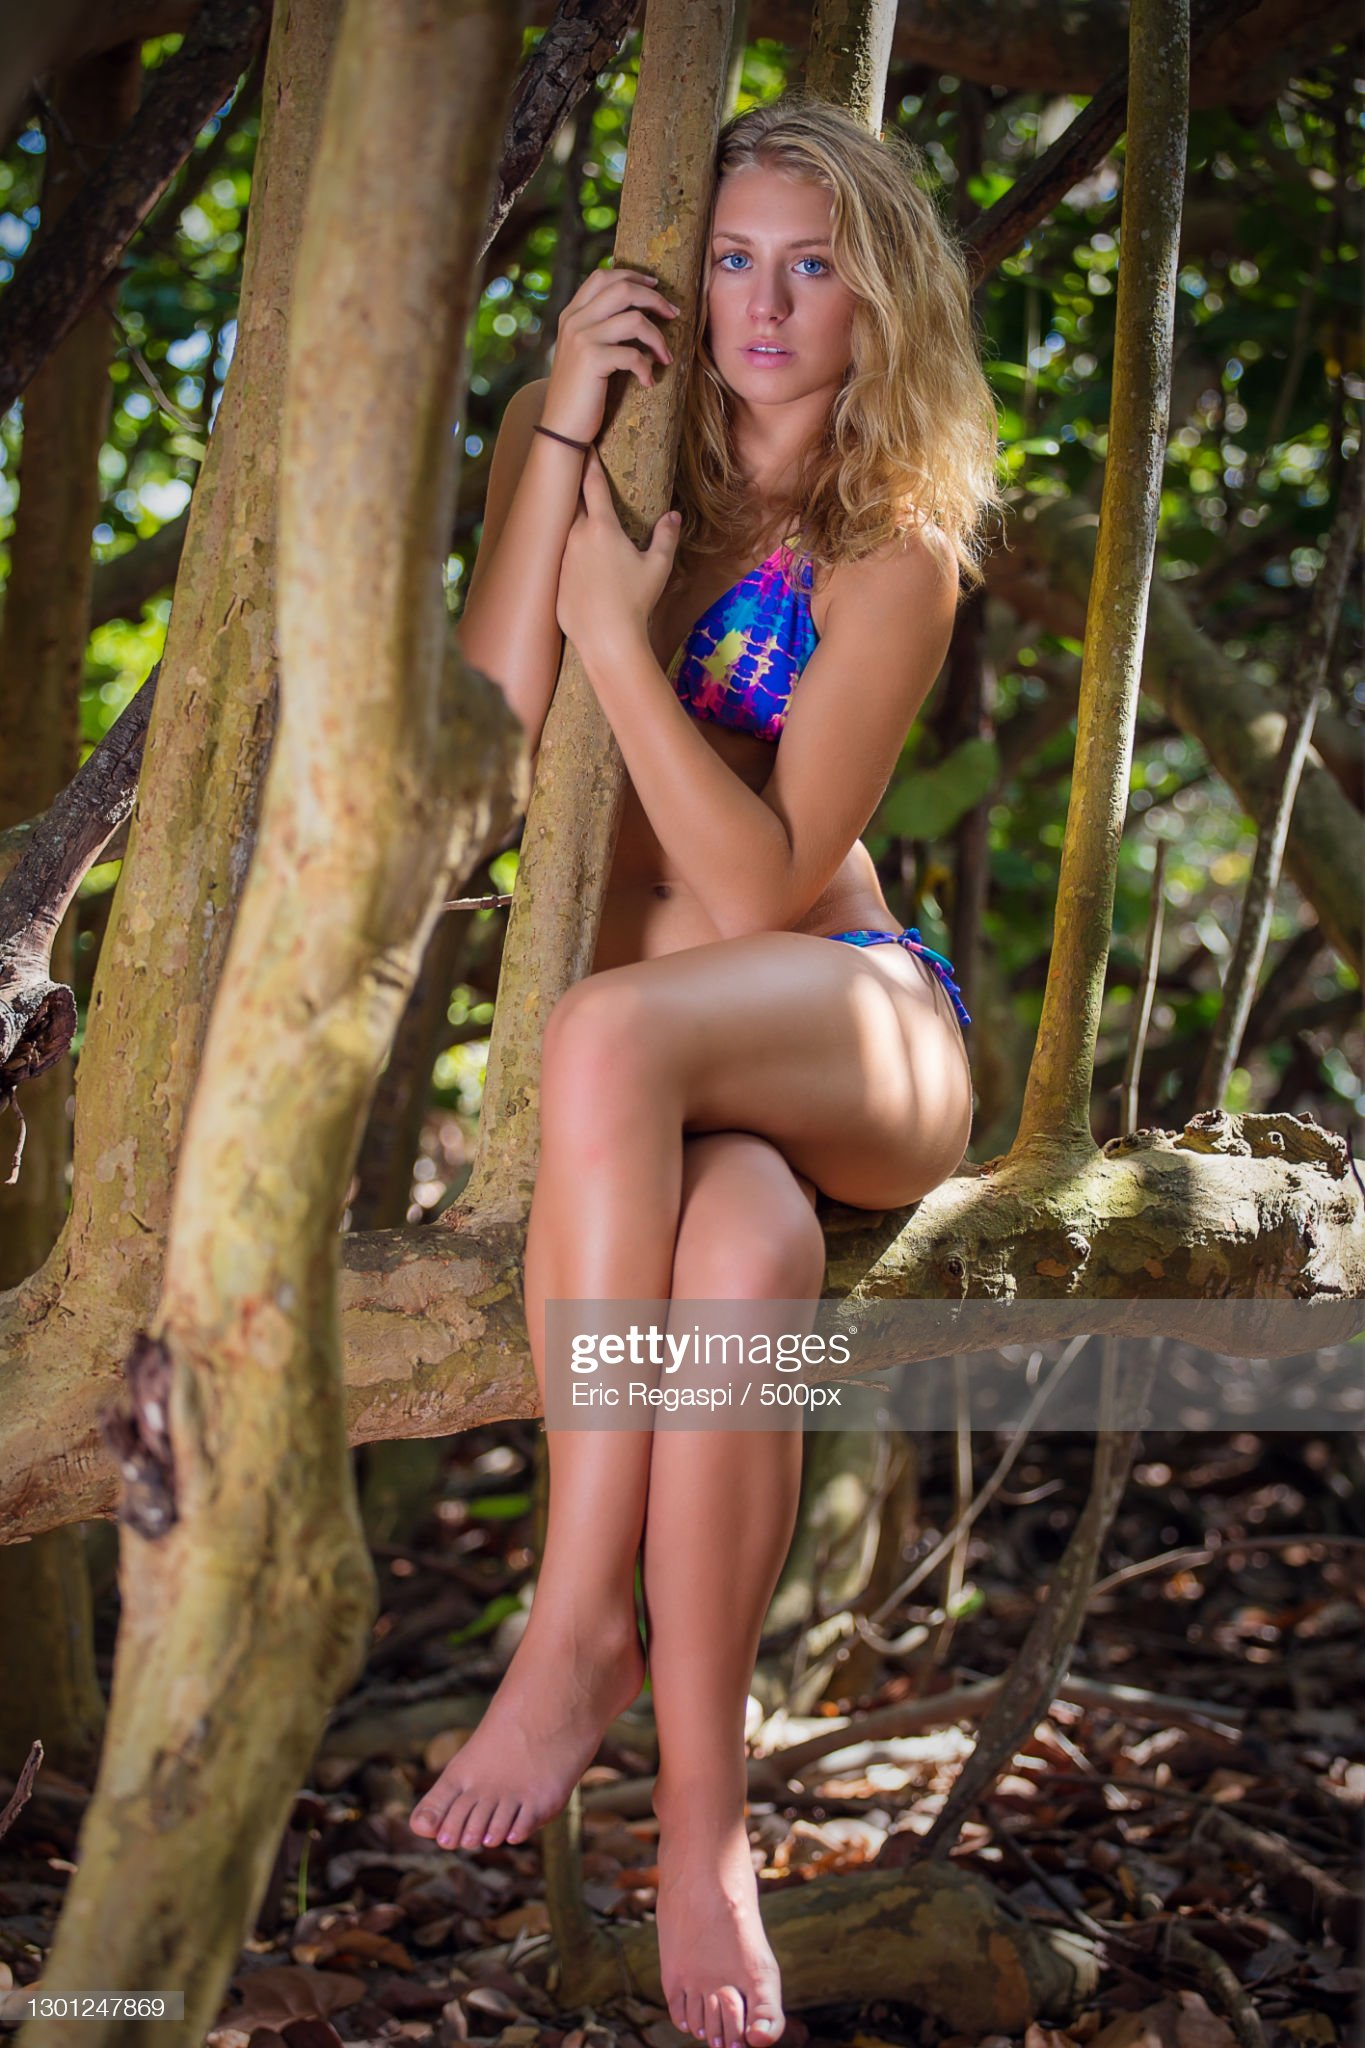 https://media.gettyimages.com/photos/full-length-of-young-woman-sitting-on-tree-trunkdelray-statesusa-picture-id1301247869?s=2048x2048